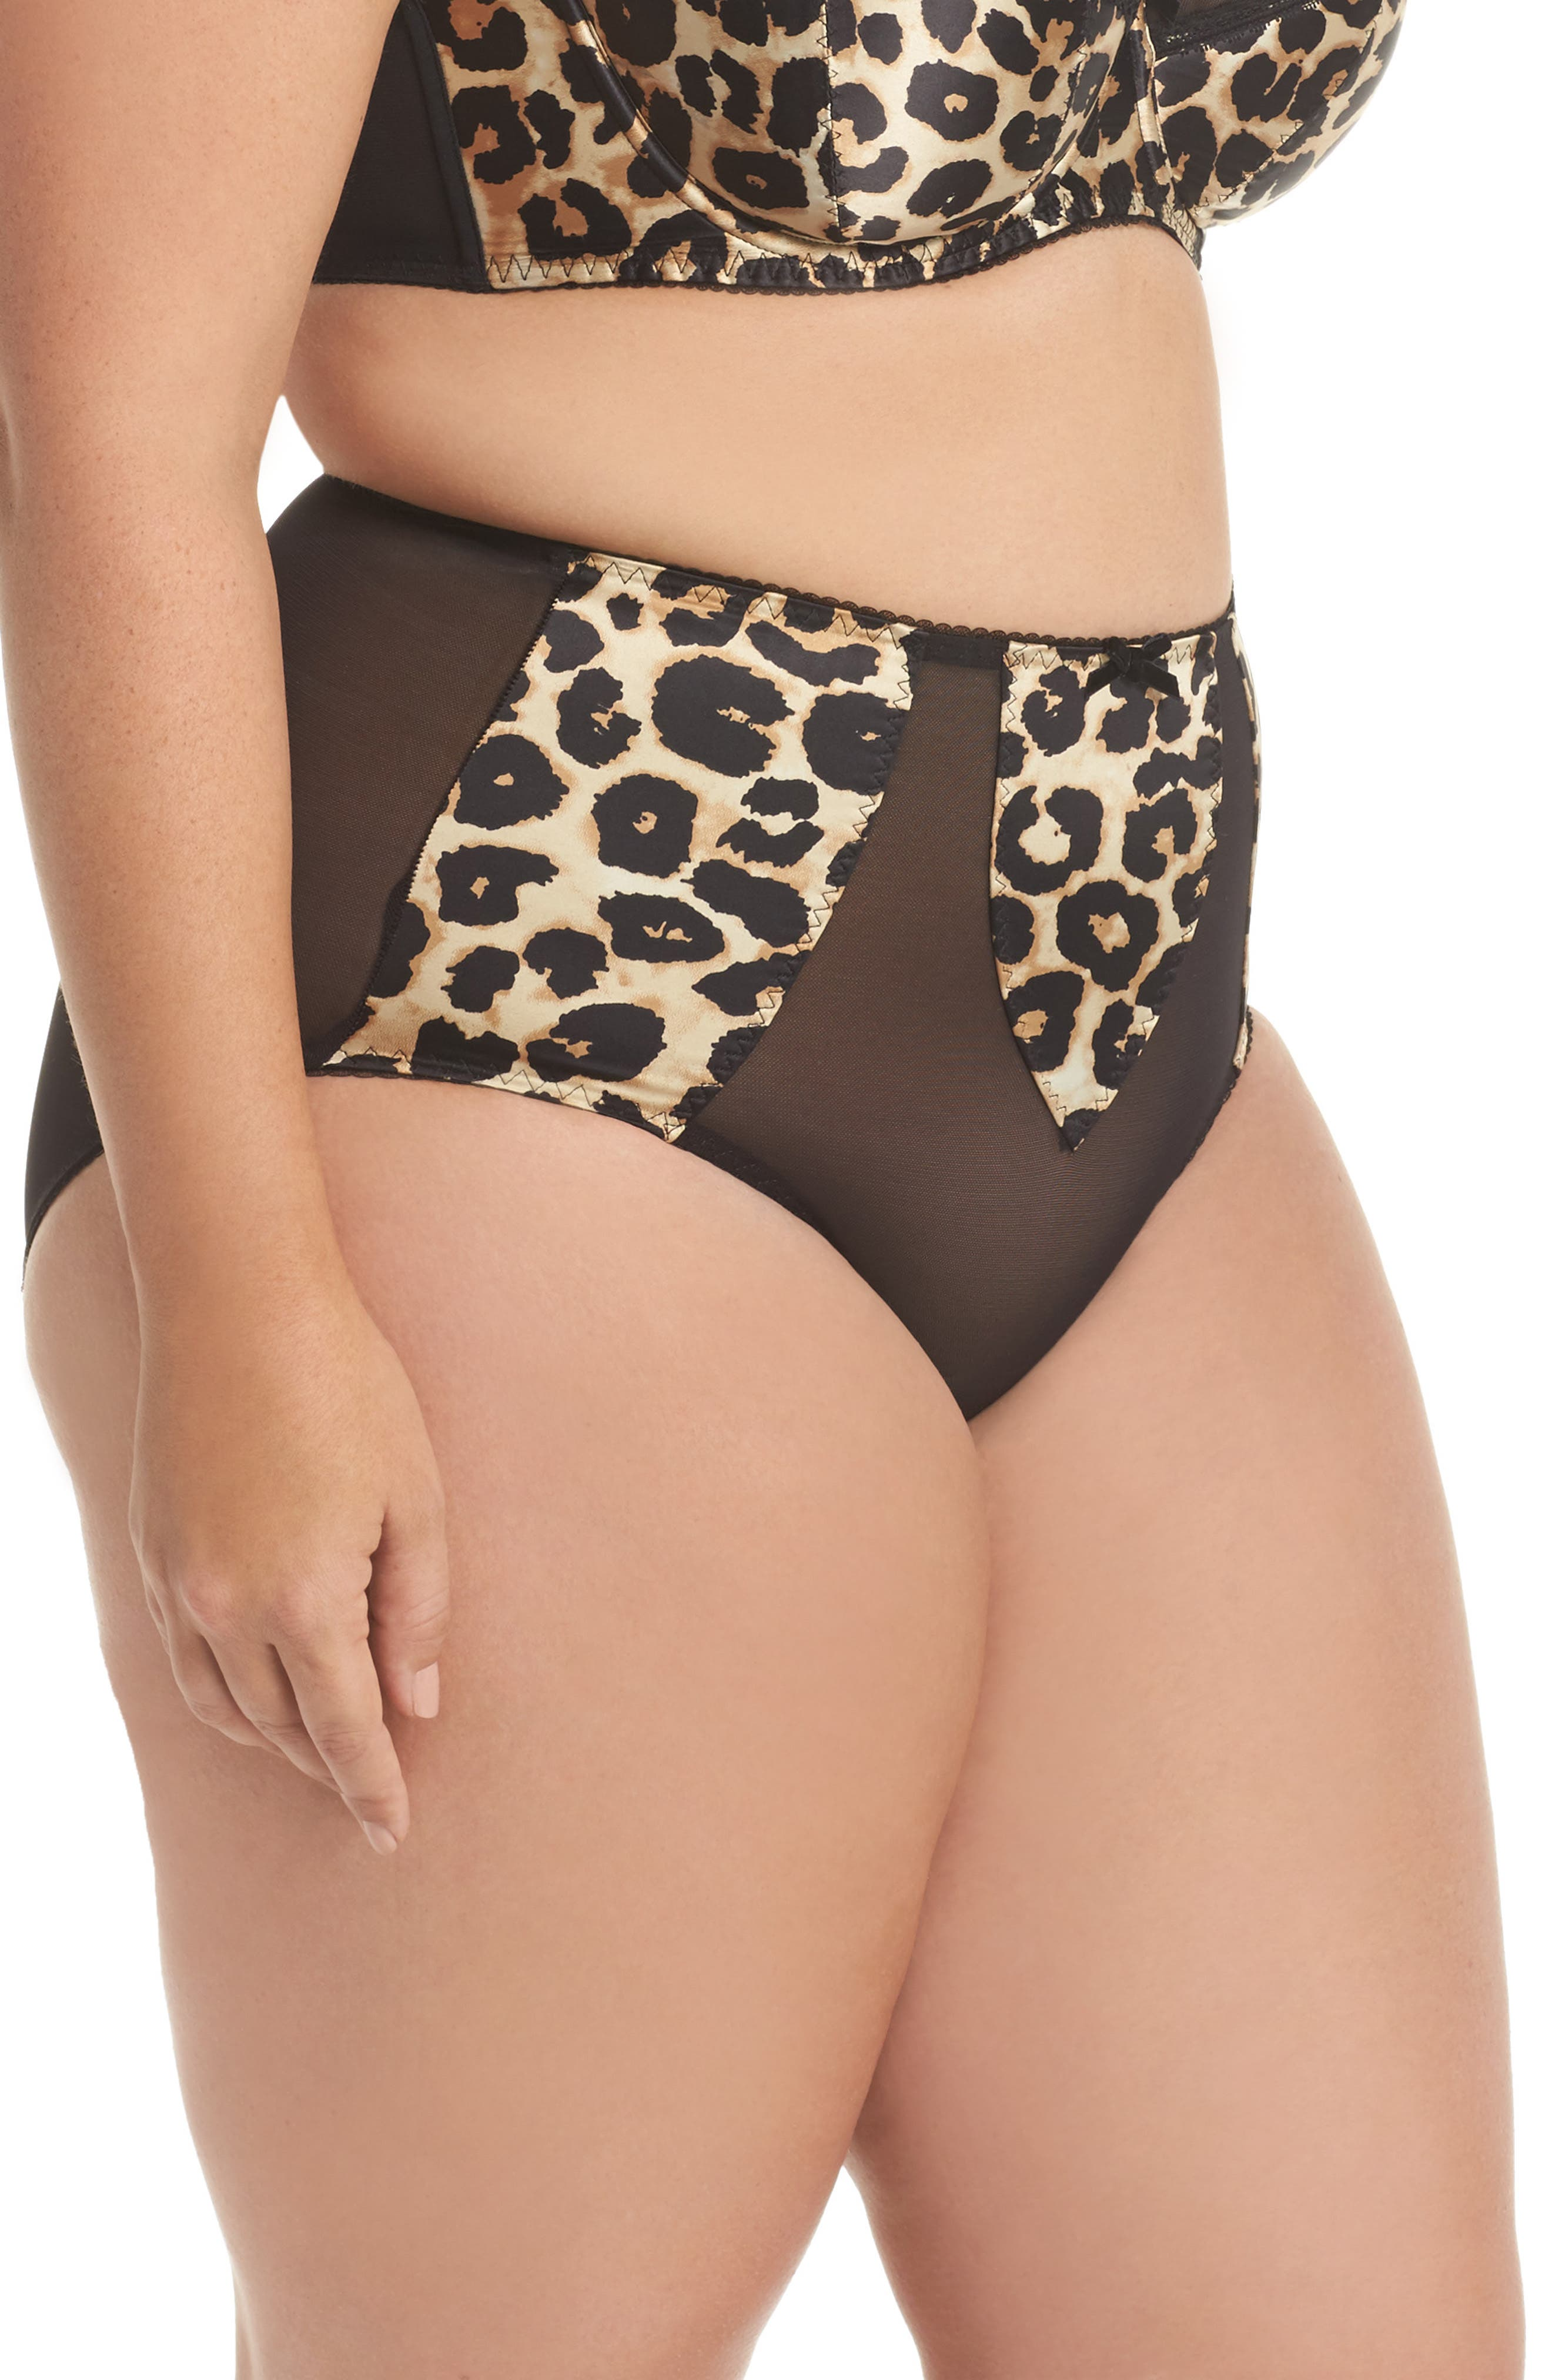 Sheer Witchery - Sophisticat Shaping Briefs,                             Alternate thumbnail 3, color,                             200